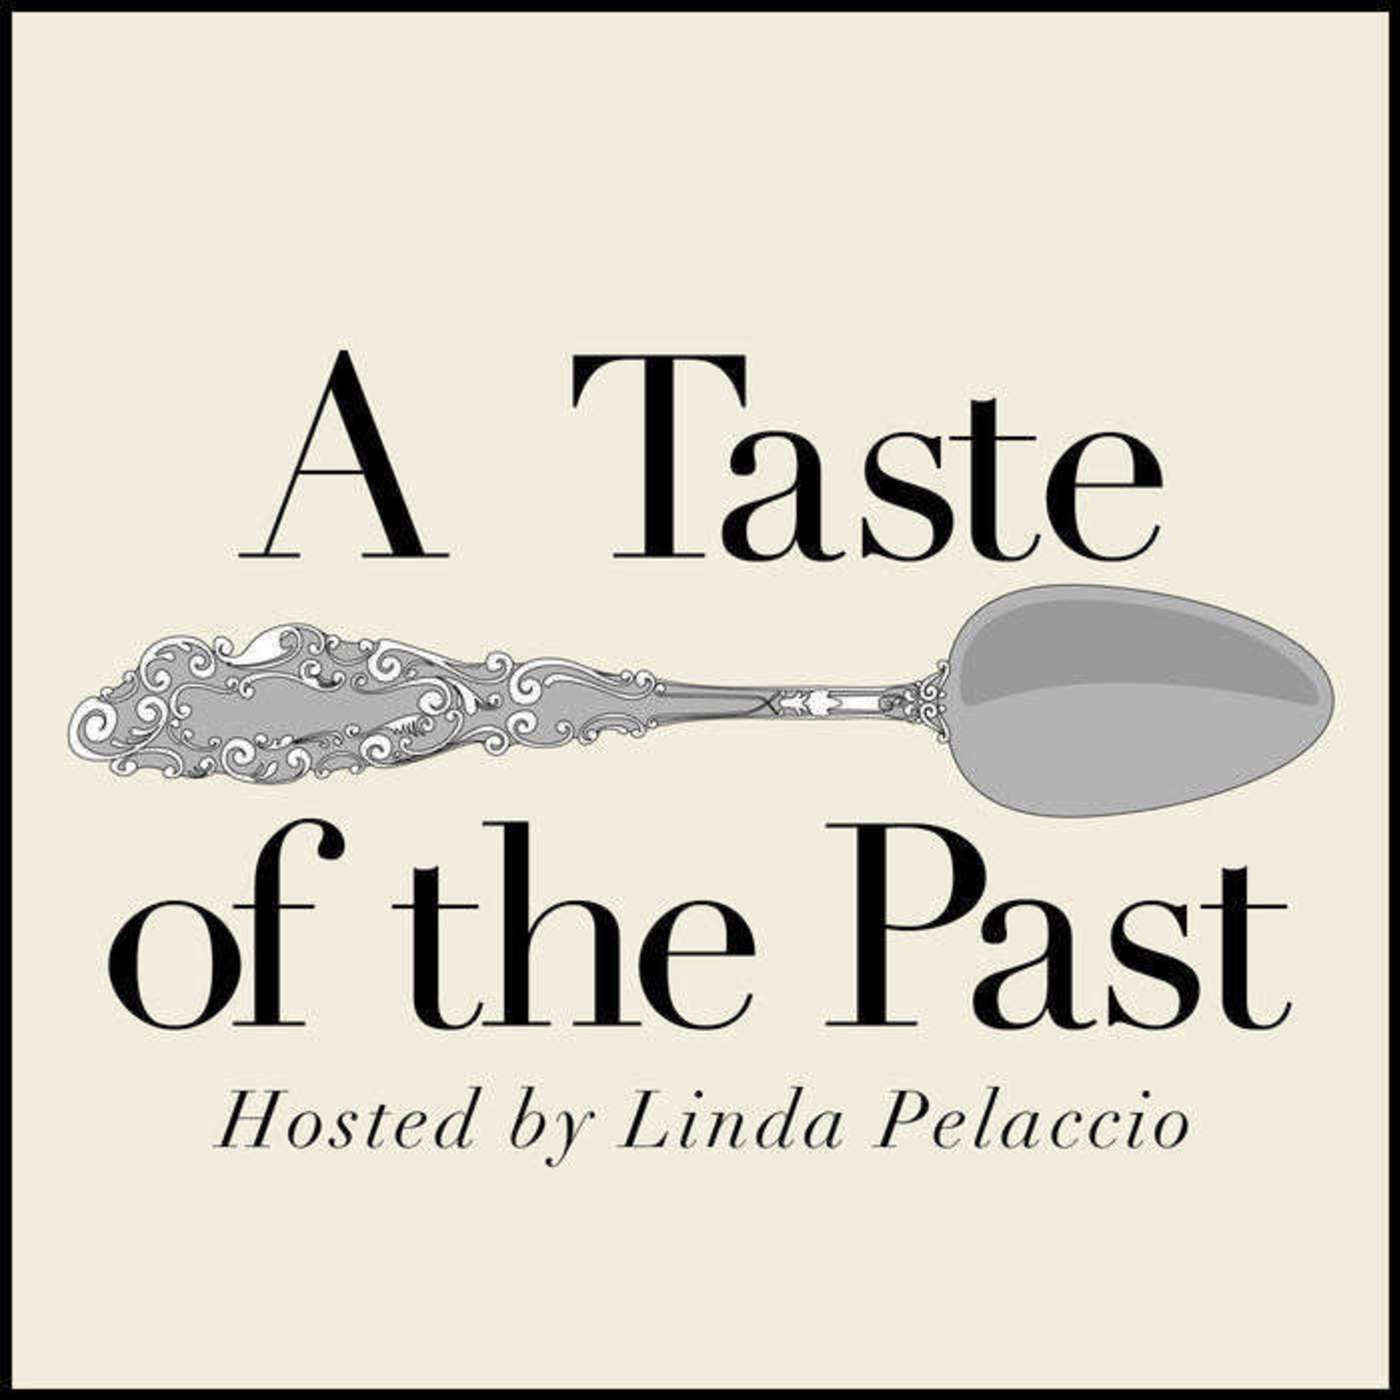 Episode 114: Betty Fussell, The Accidental Food Historian